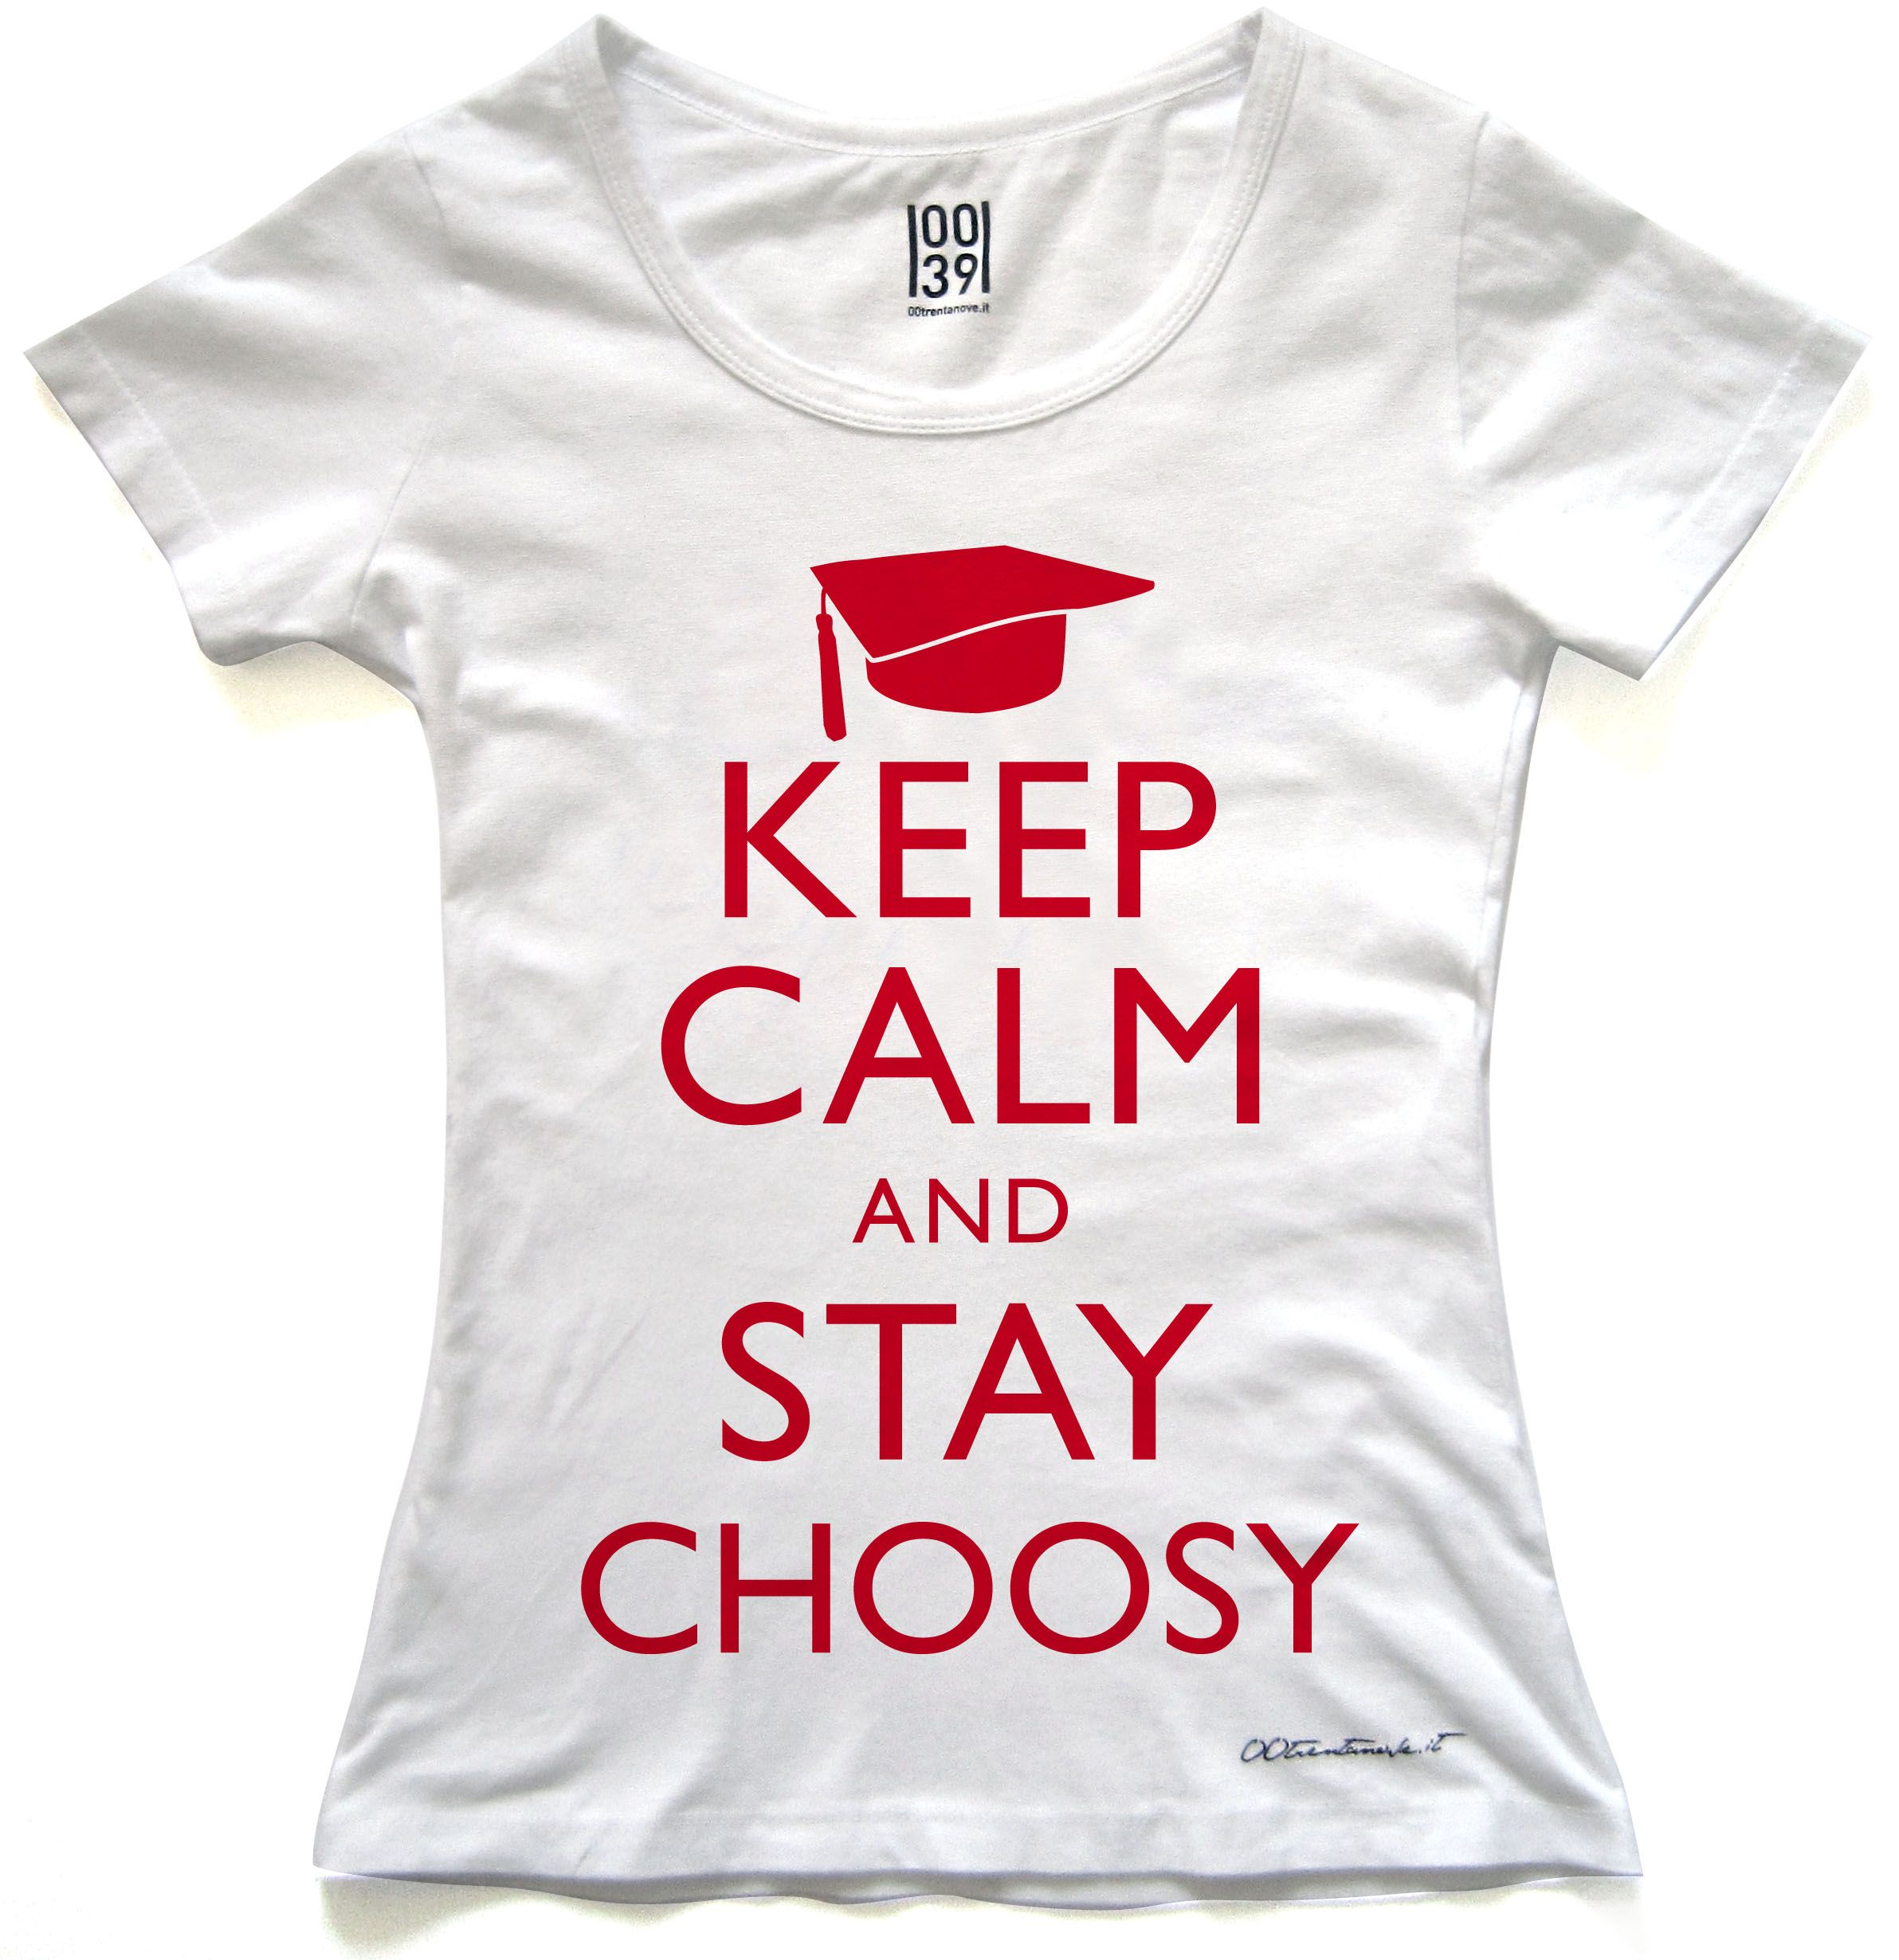 100% cotton  MADE IN ITALY  size: S-M-L